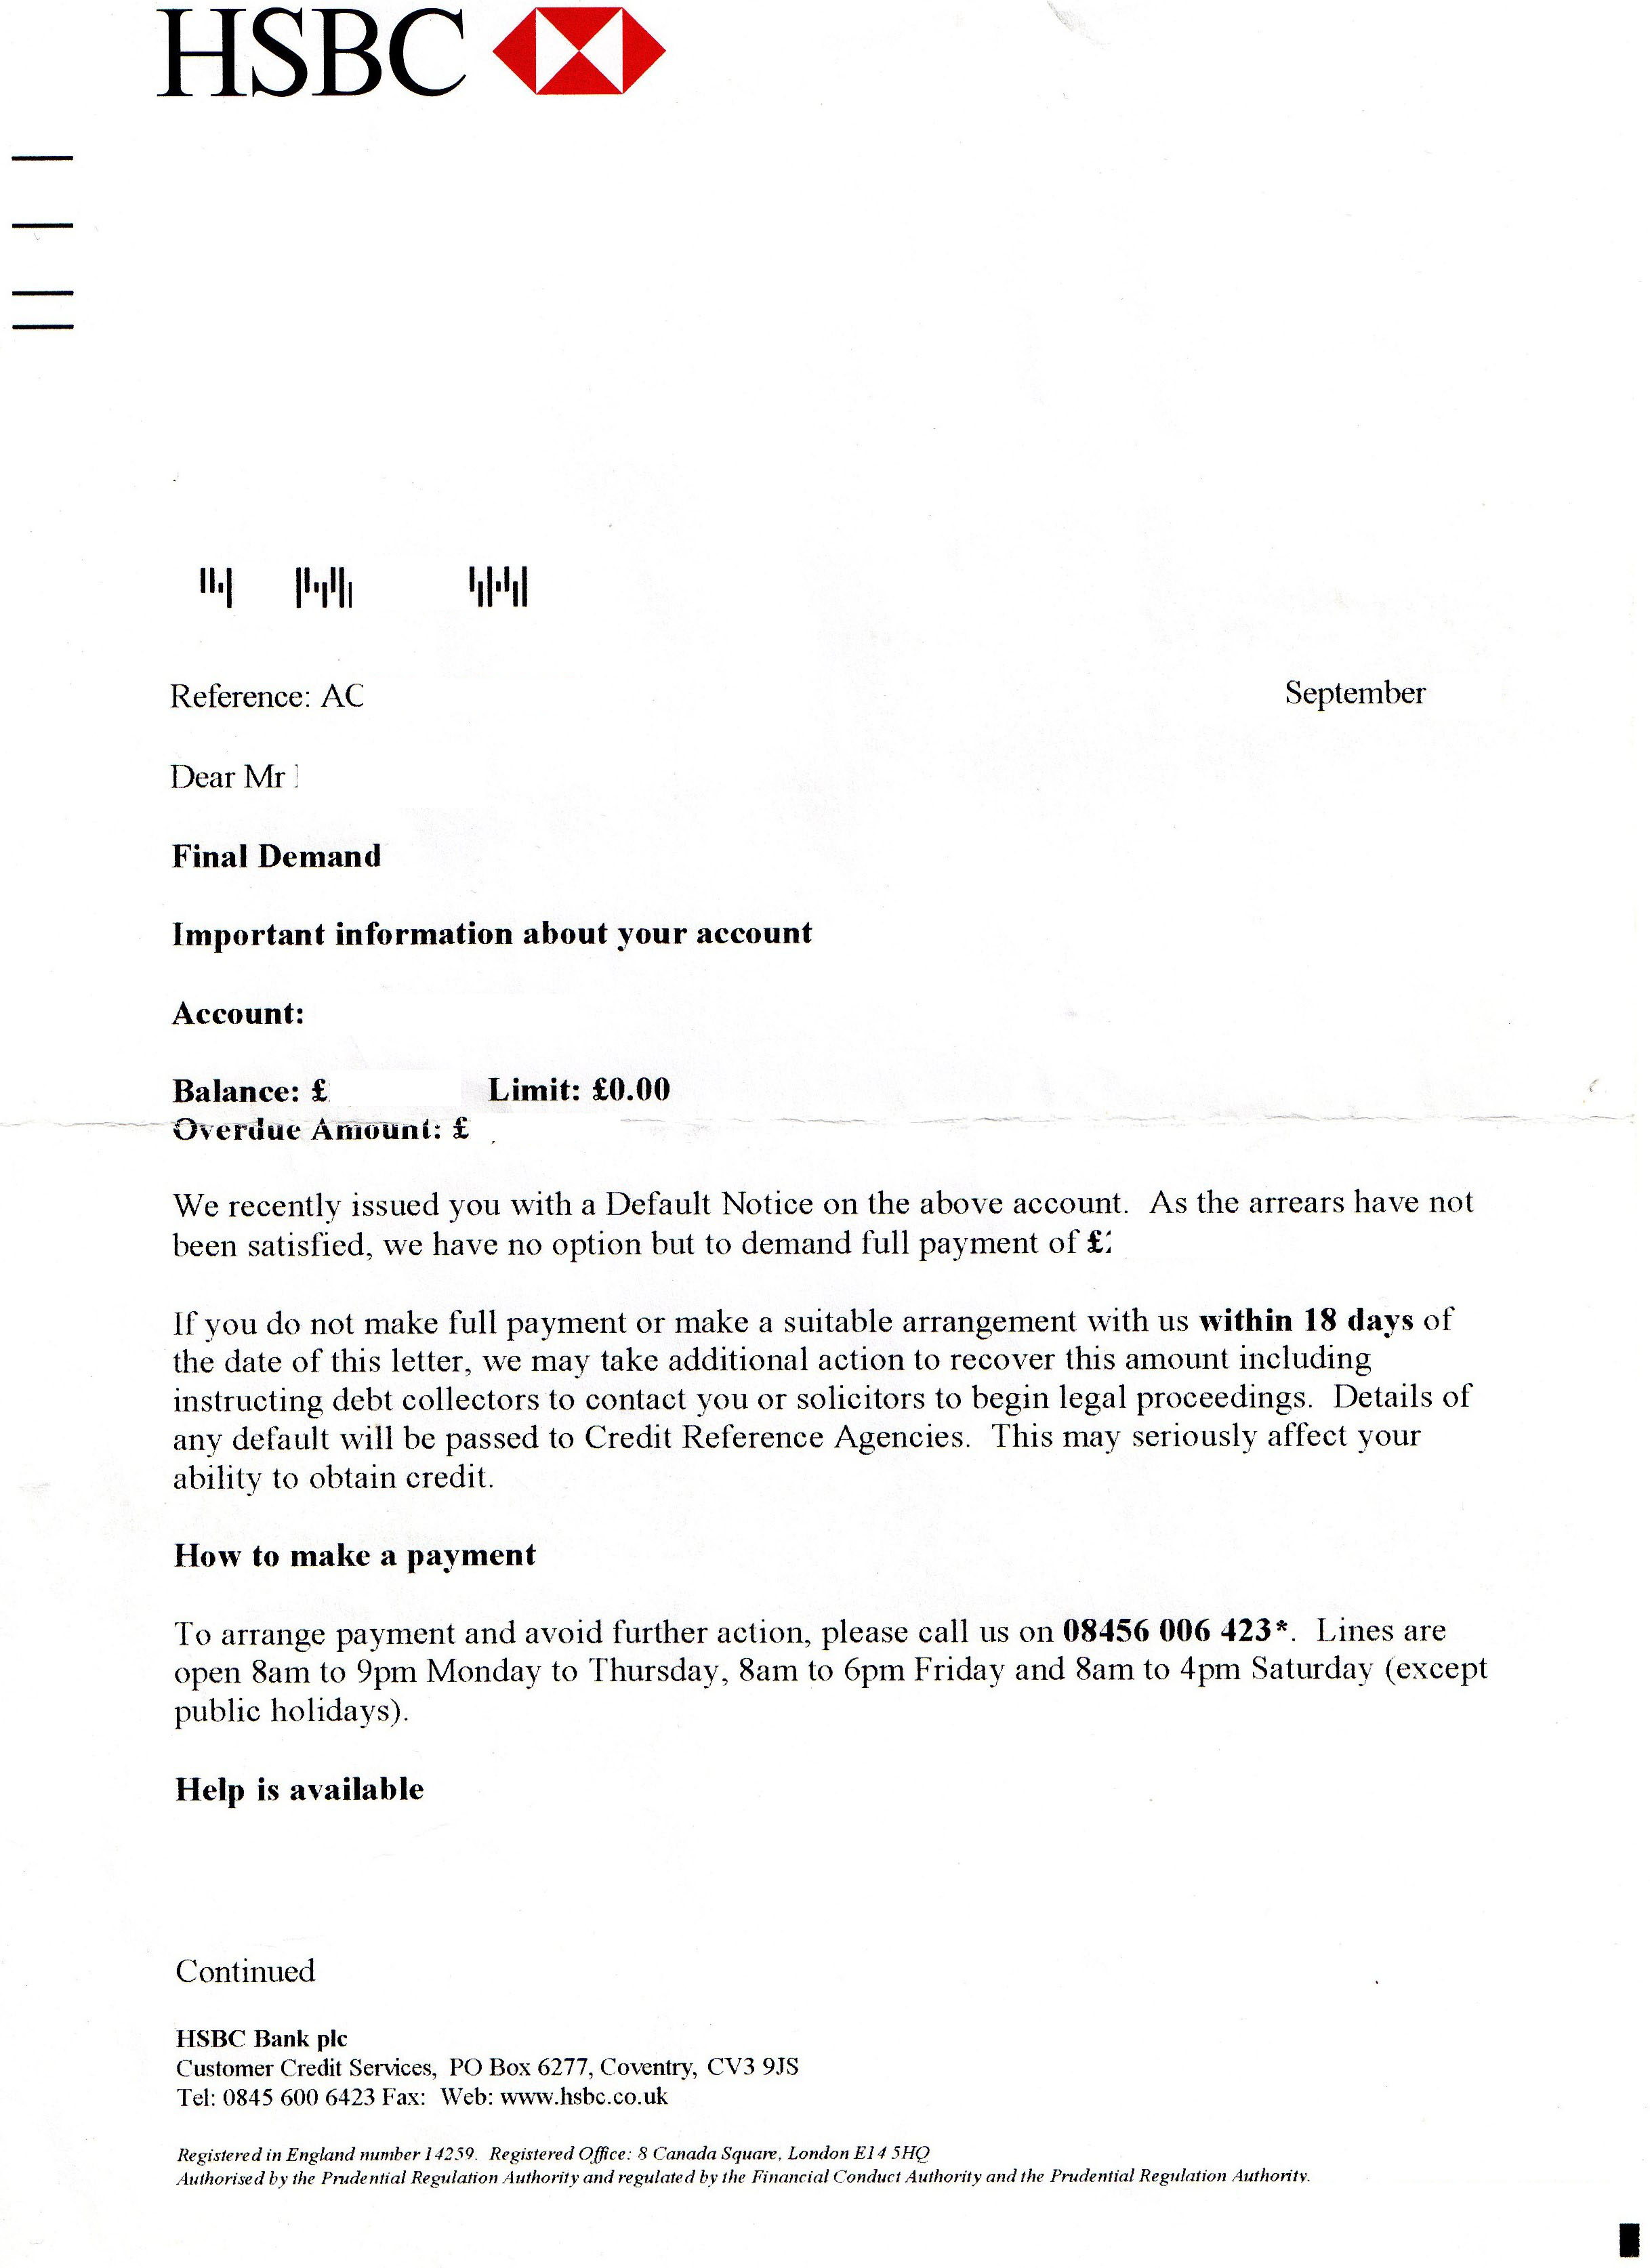 Removal of a default notice applied by HSBC - Page 2 - HSBC